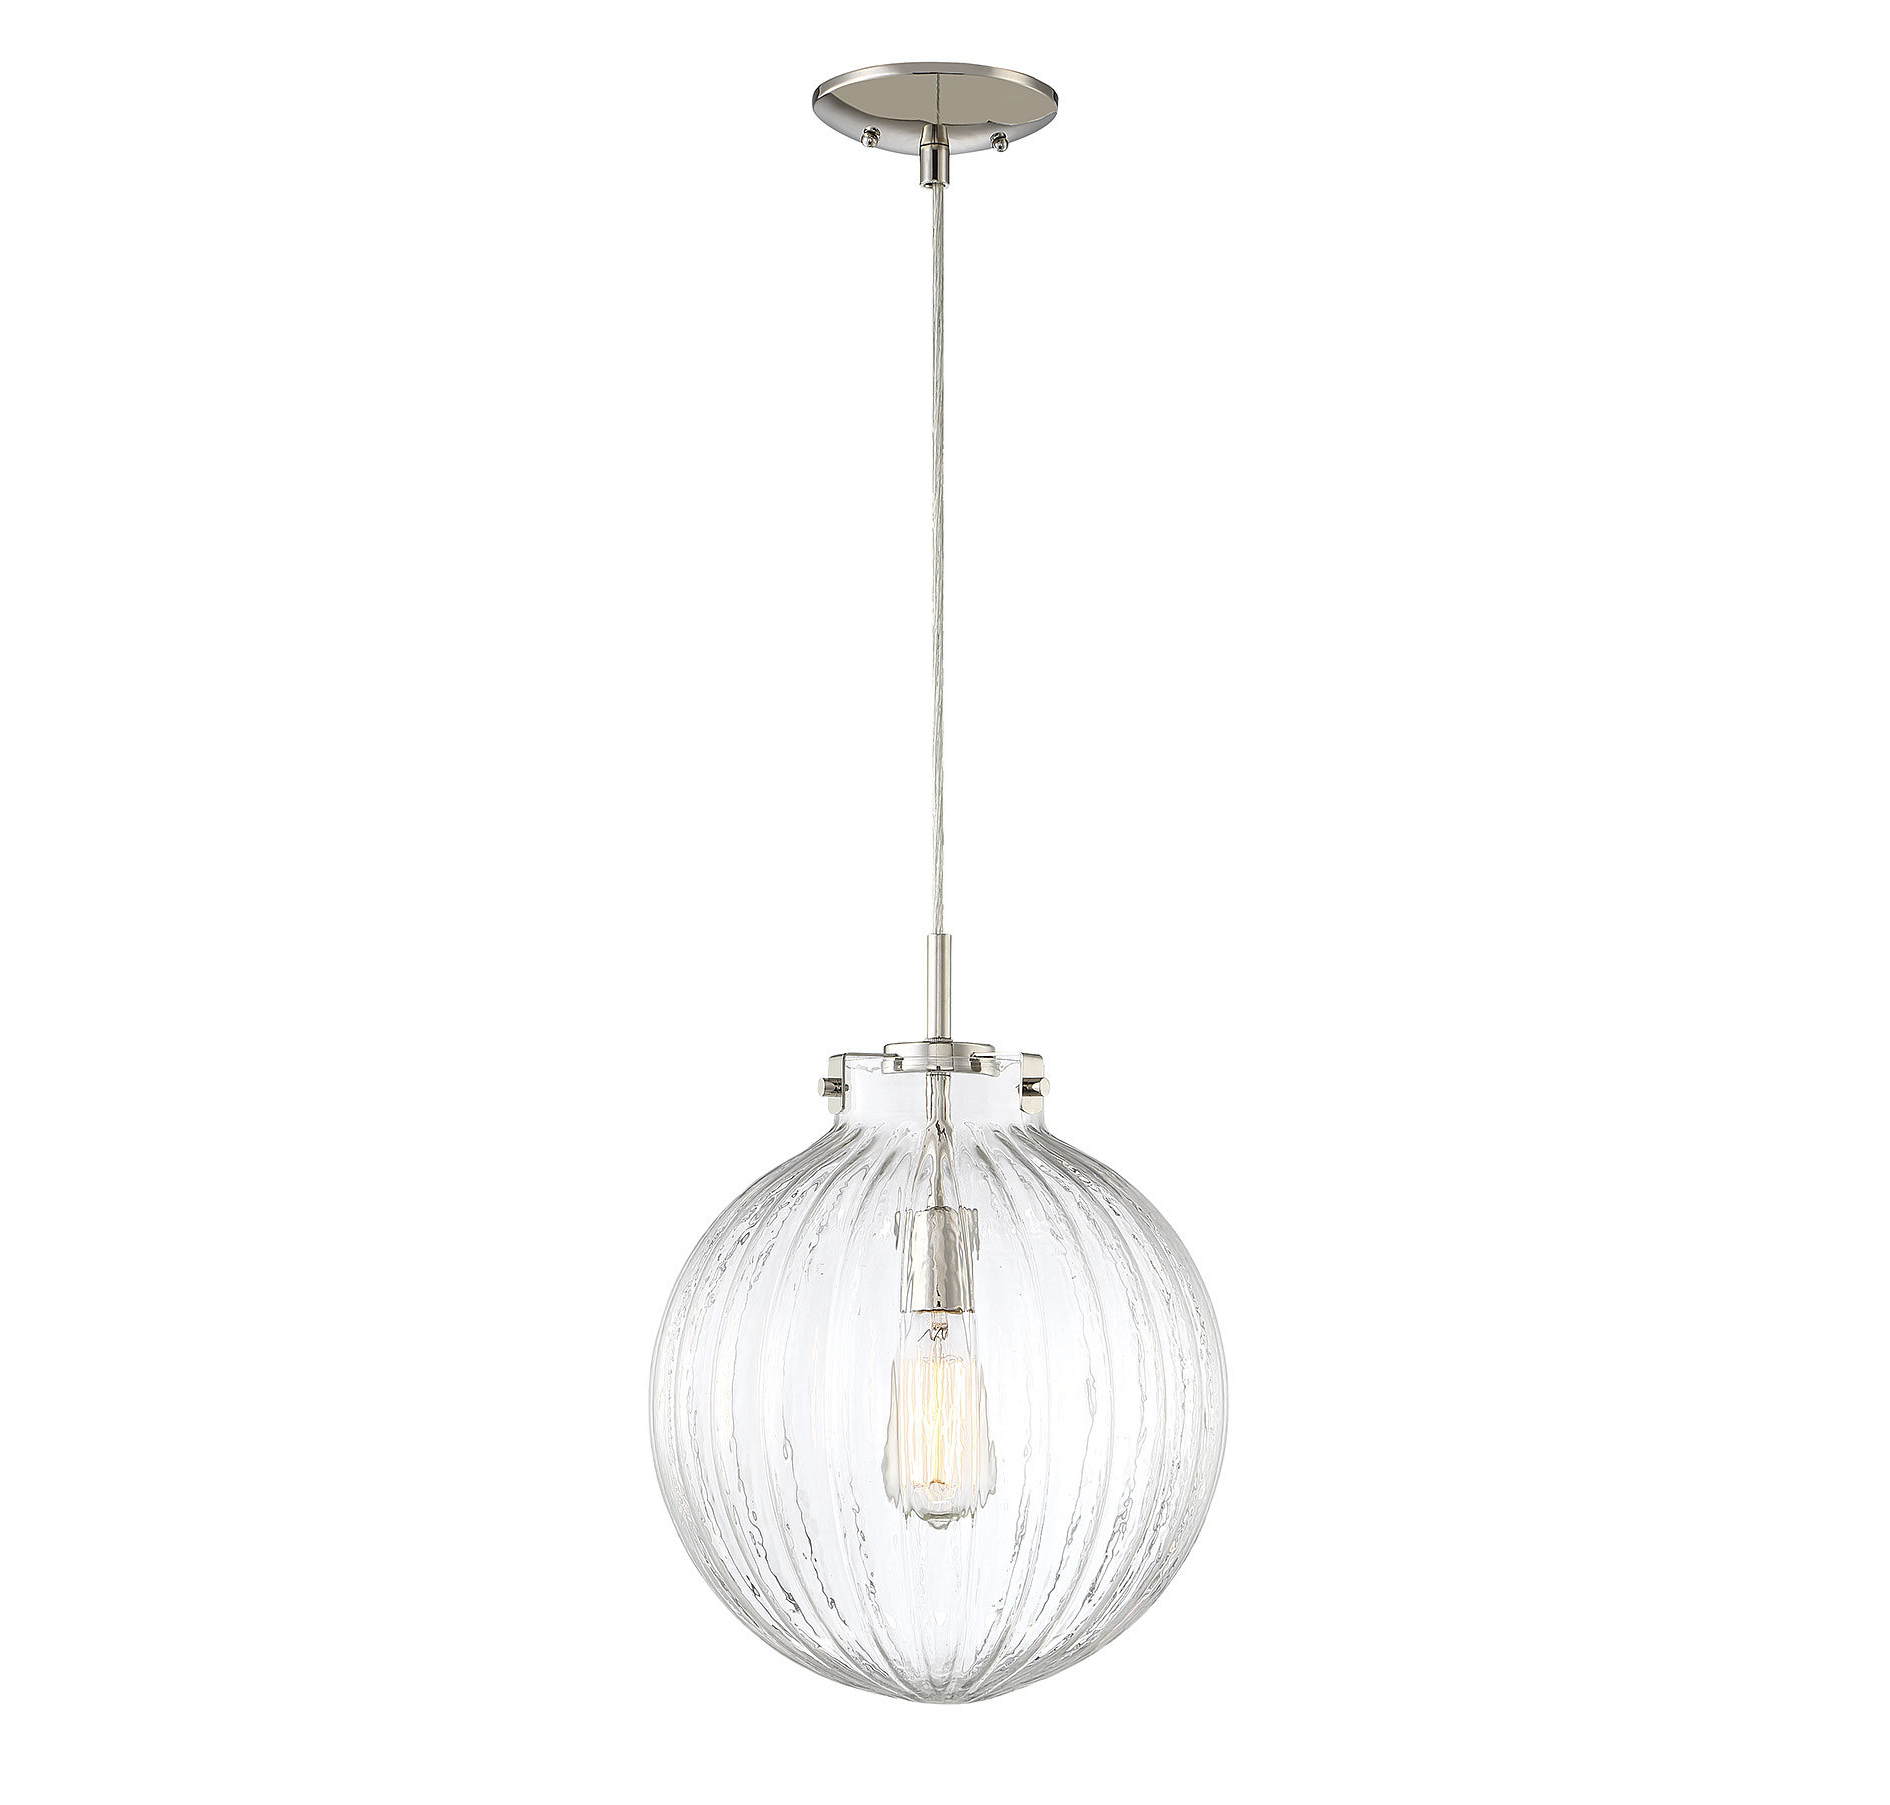 Widely Used Nevels 1 Light Single Globe Pendant With Regard To Cayden 1 Light Single Globe Pendants (View 25 of 25)